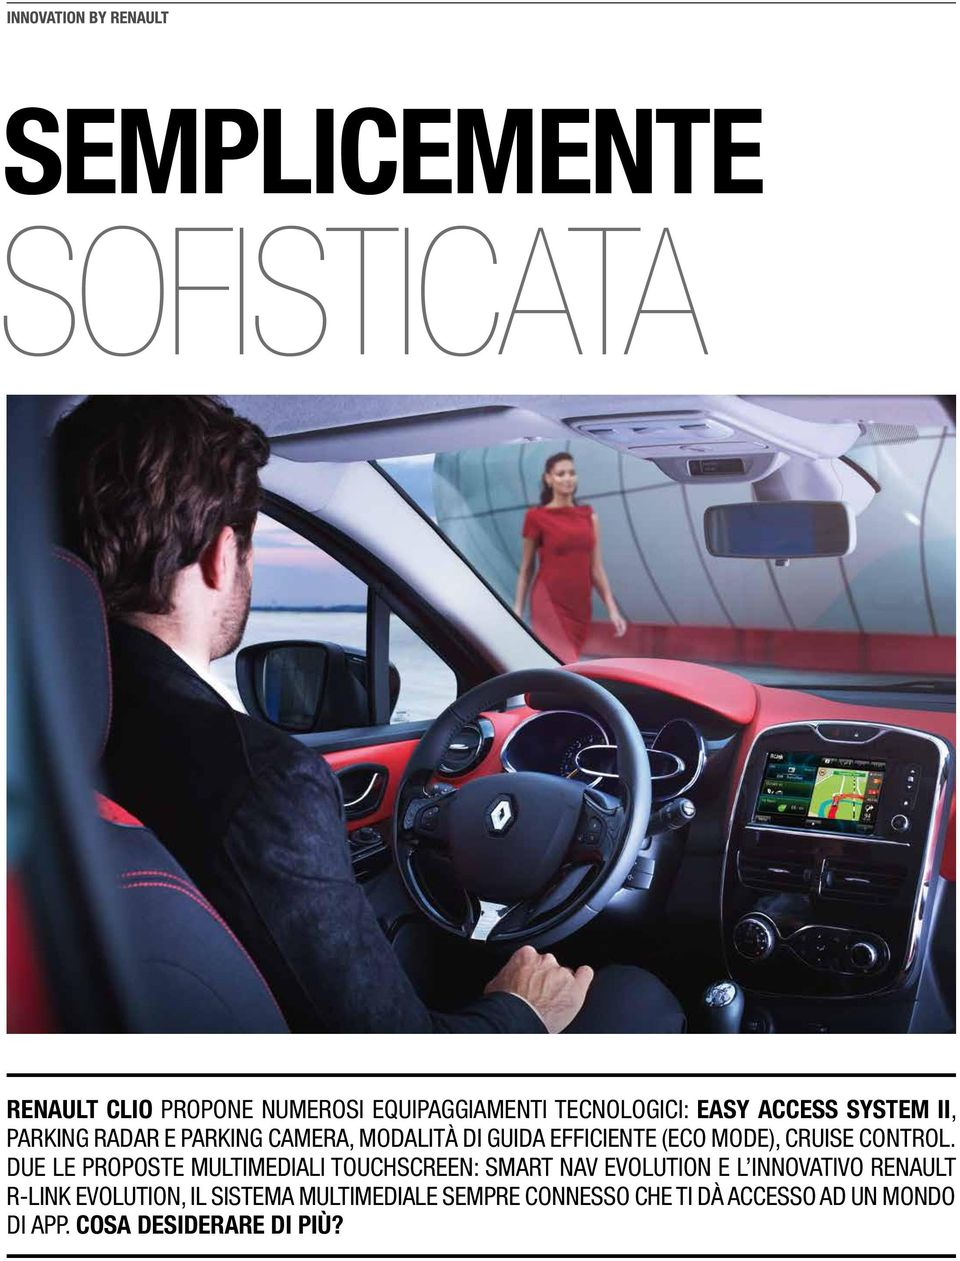 DUE LE PROPOSTE MULTIMEDIALI TOUCHSCREEN: SMART NAV EVOLUTION E L INNOVATIVO RENAULT R-LINK